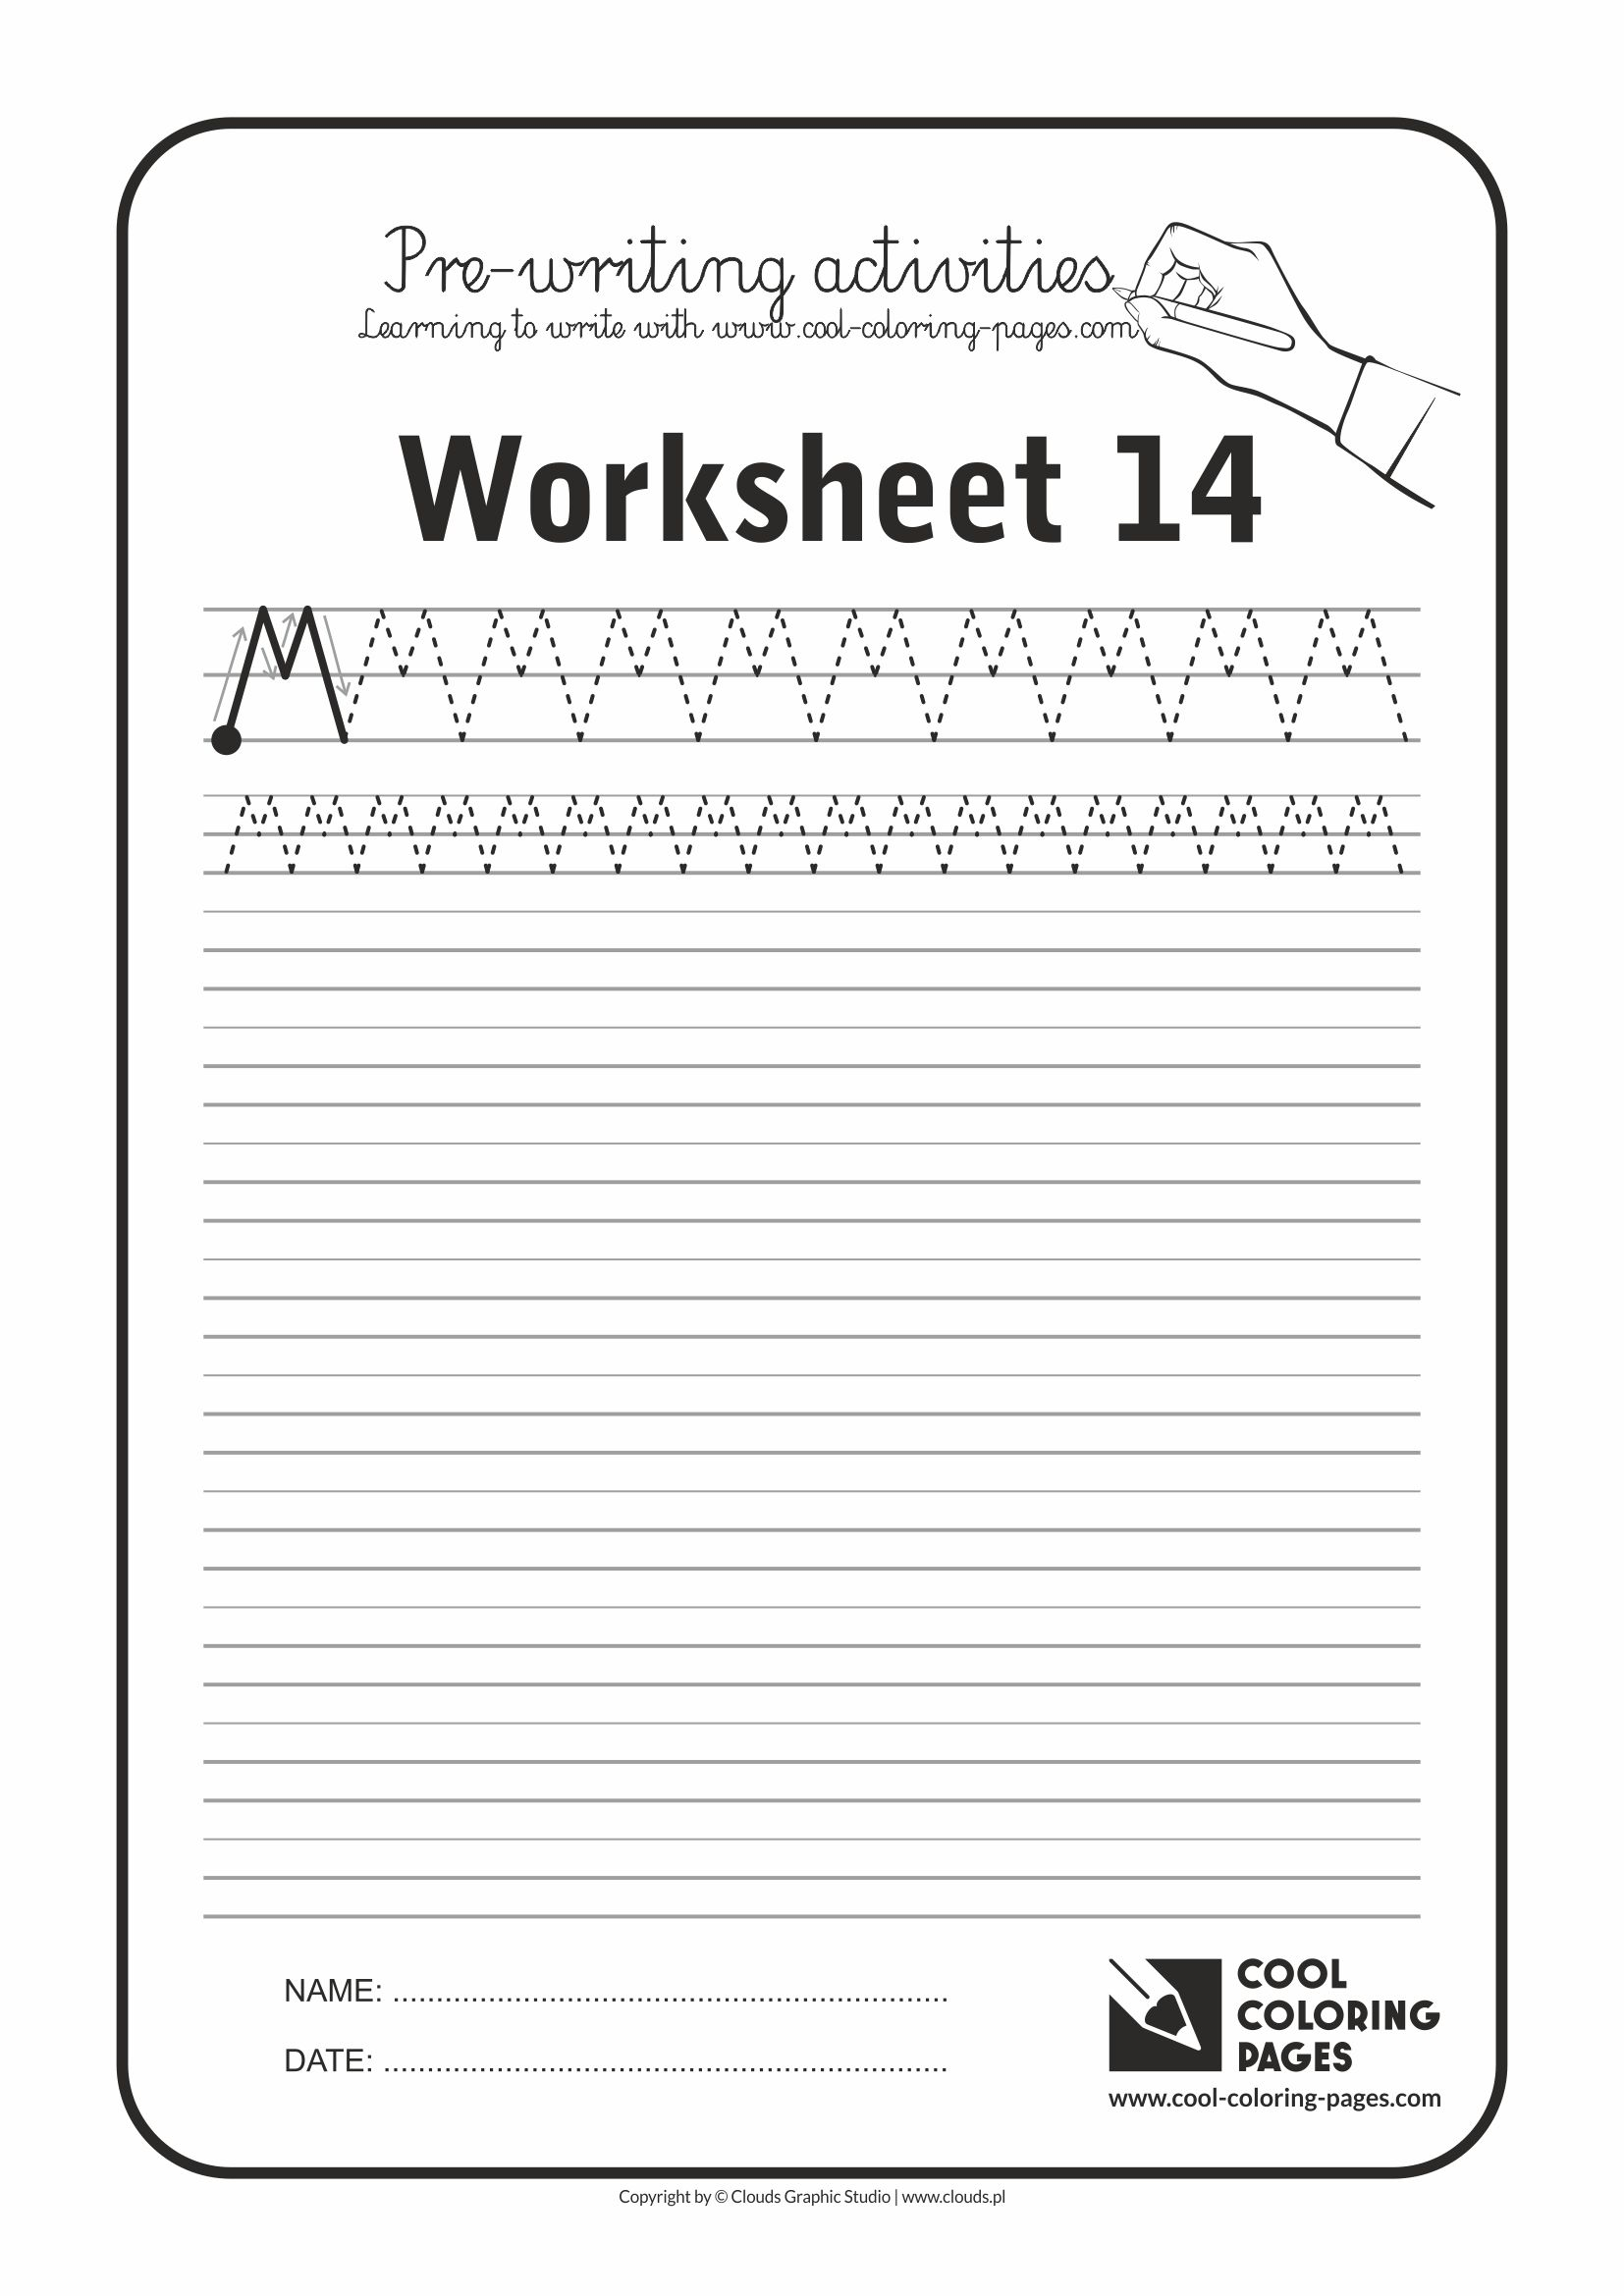 Cool Coloring Pages / Pre-writing activities / Worksheet no.14